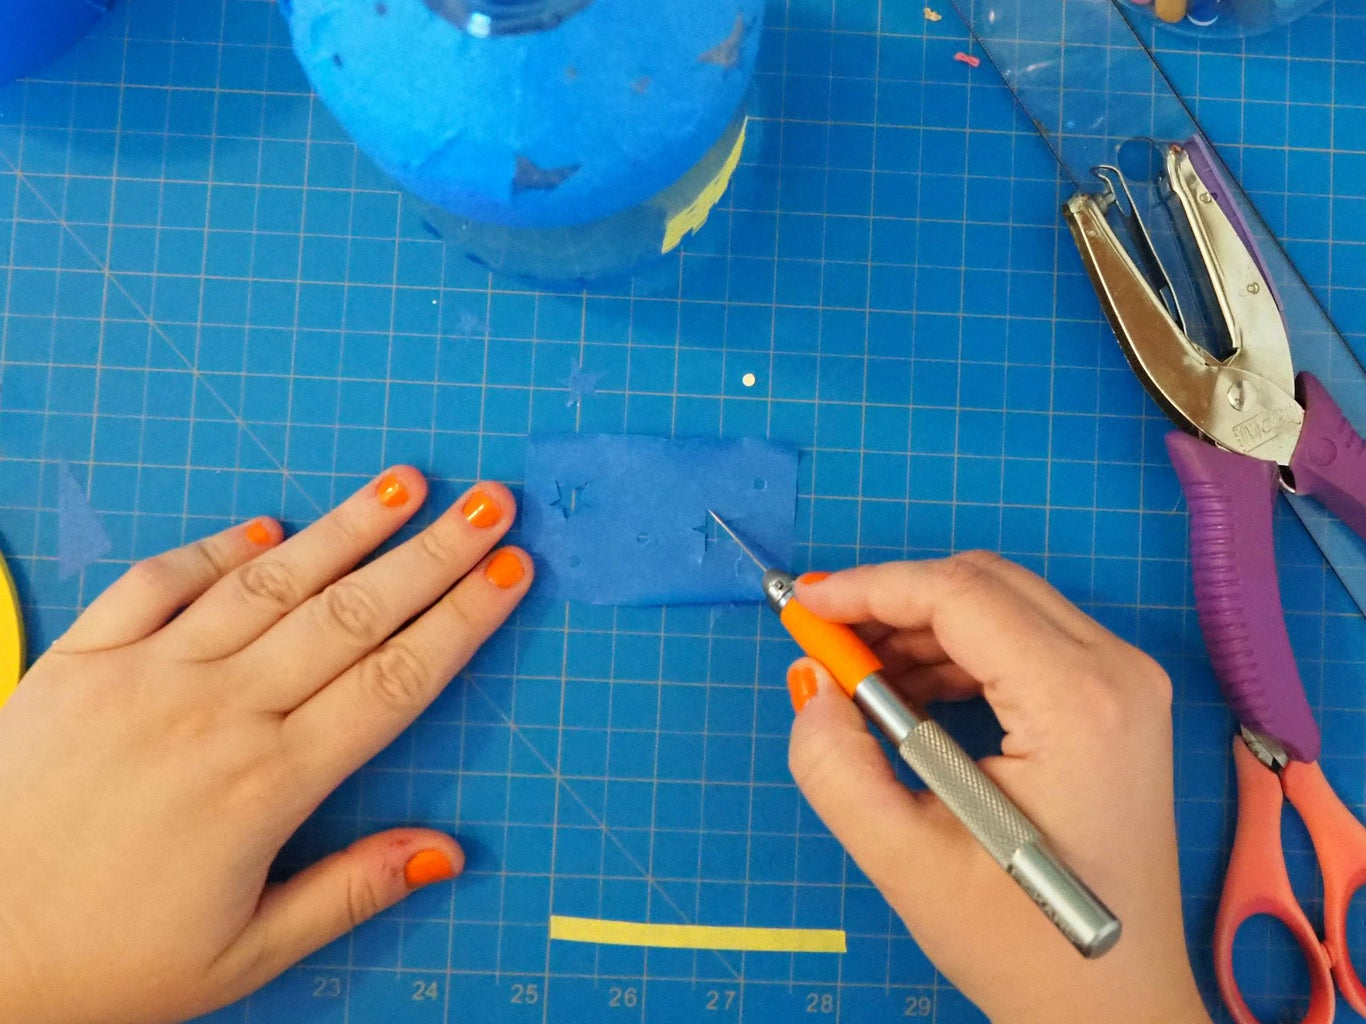 Make Small Details With a Craft Knife or Hole Punch